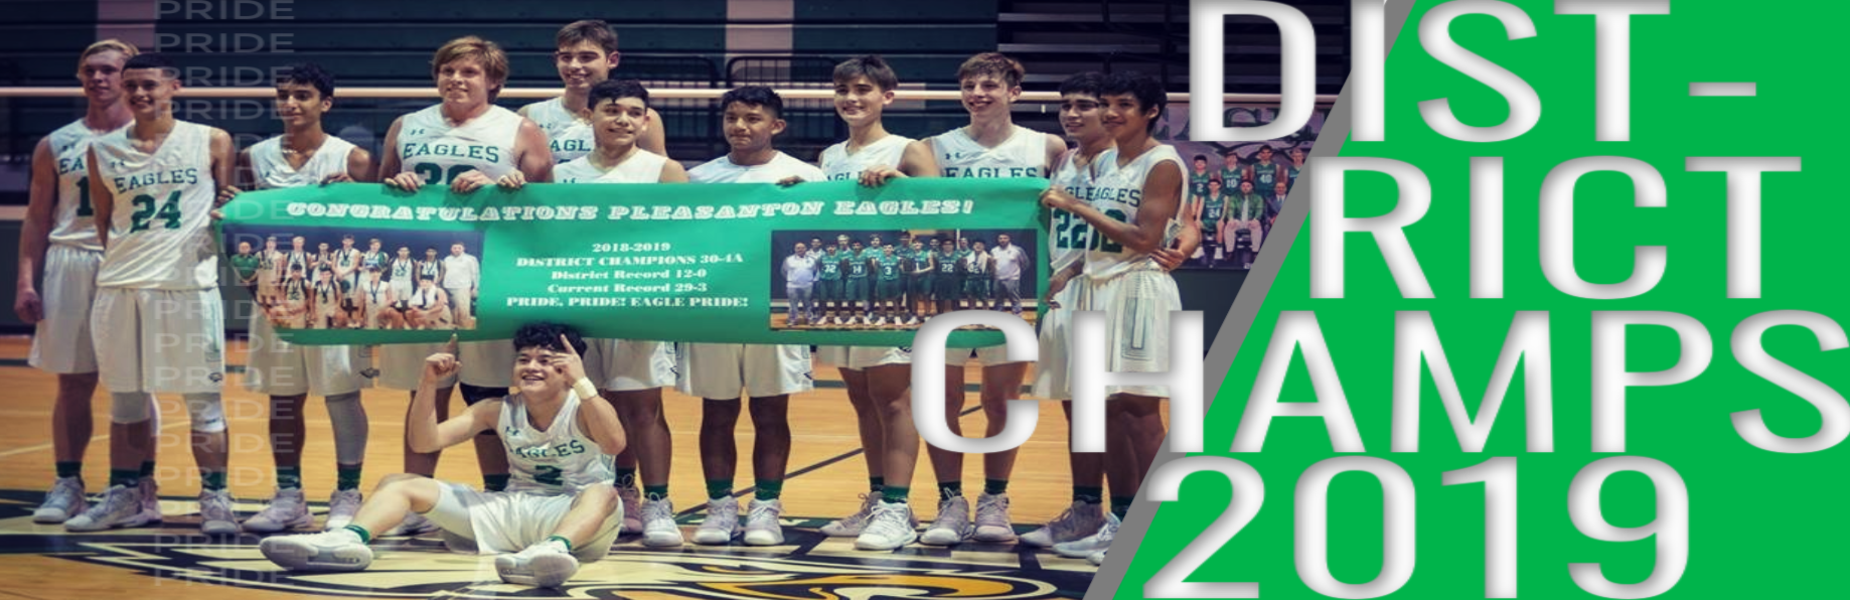 basketball district champs